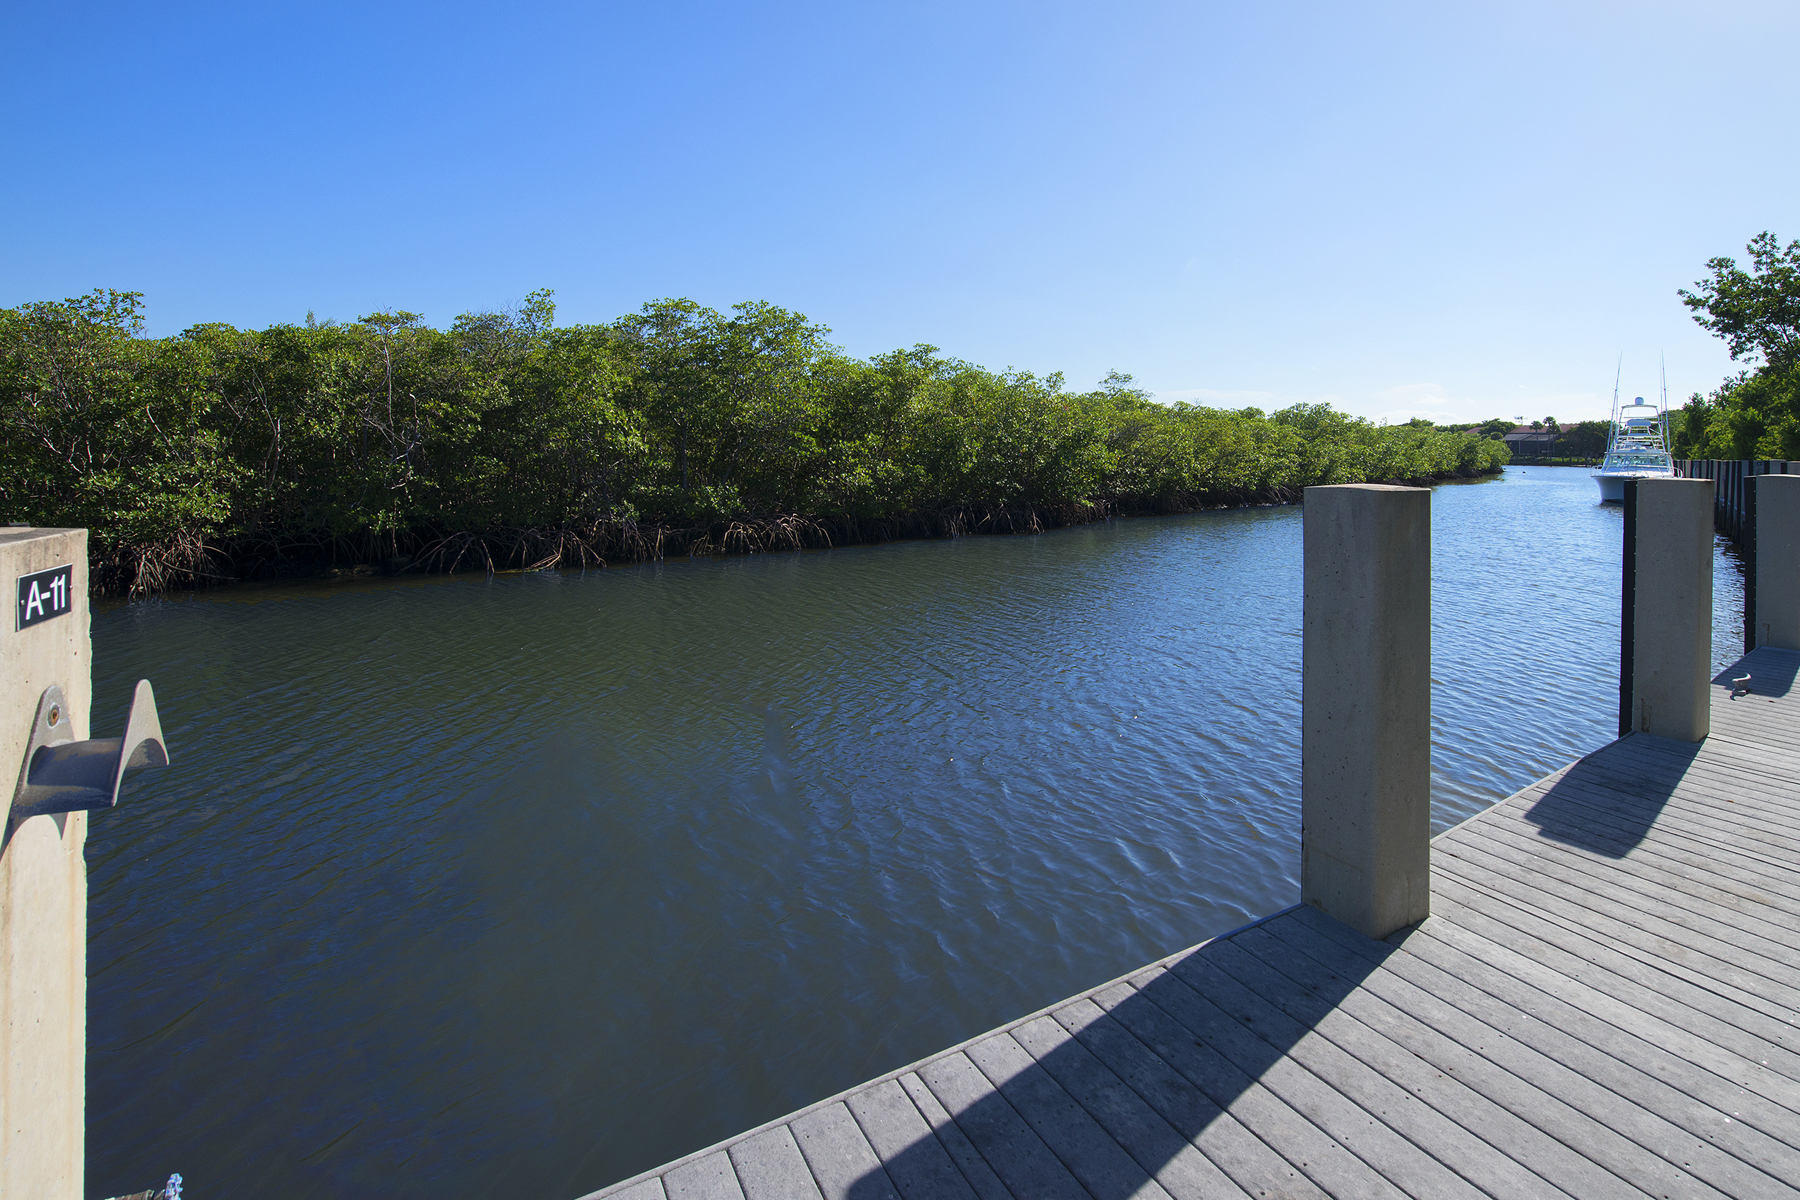 Additional photo for property listing at Prime Dockage Location at Ocean Reef 11 Gate House Road, Dock AS-11 Key Largo, フロリダ 33037 アメリカ合衆国